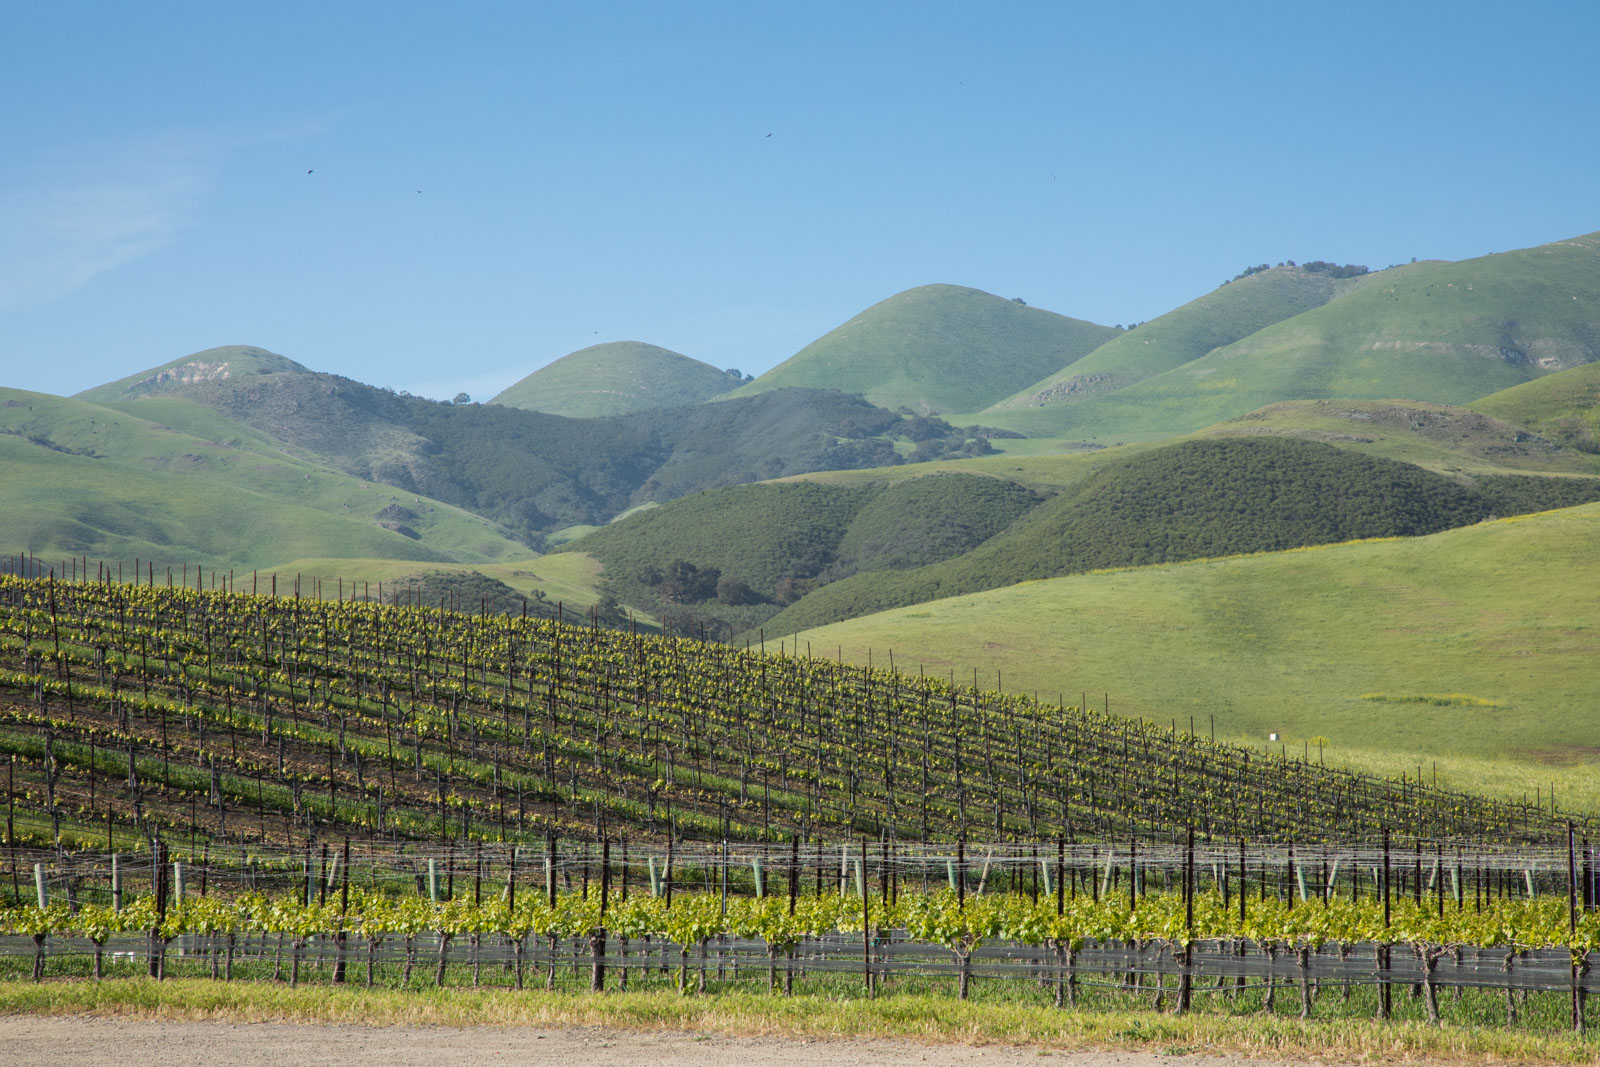 A vineyard in the Edna Valley, near San Luis Obispo, California. ©Kevin Day/Opening a Bottle